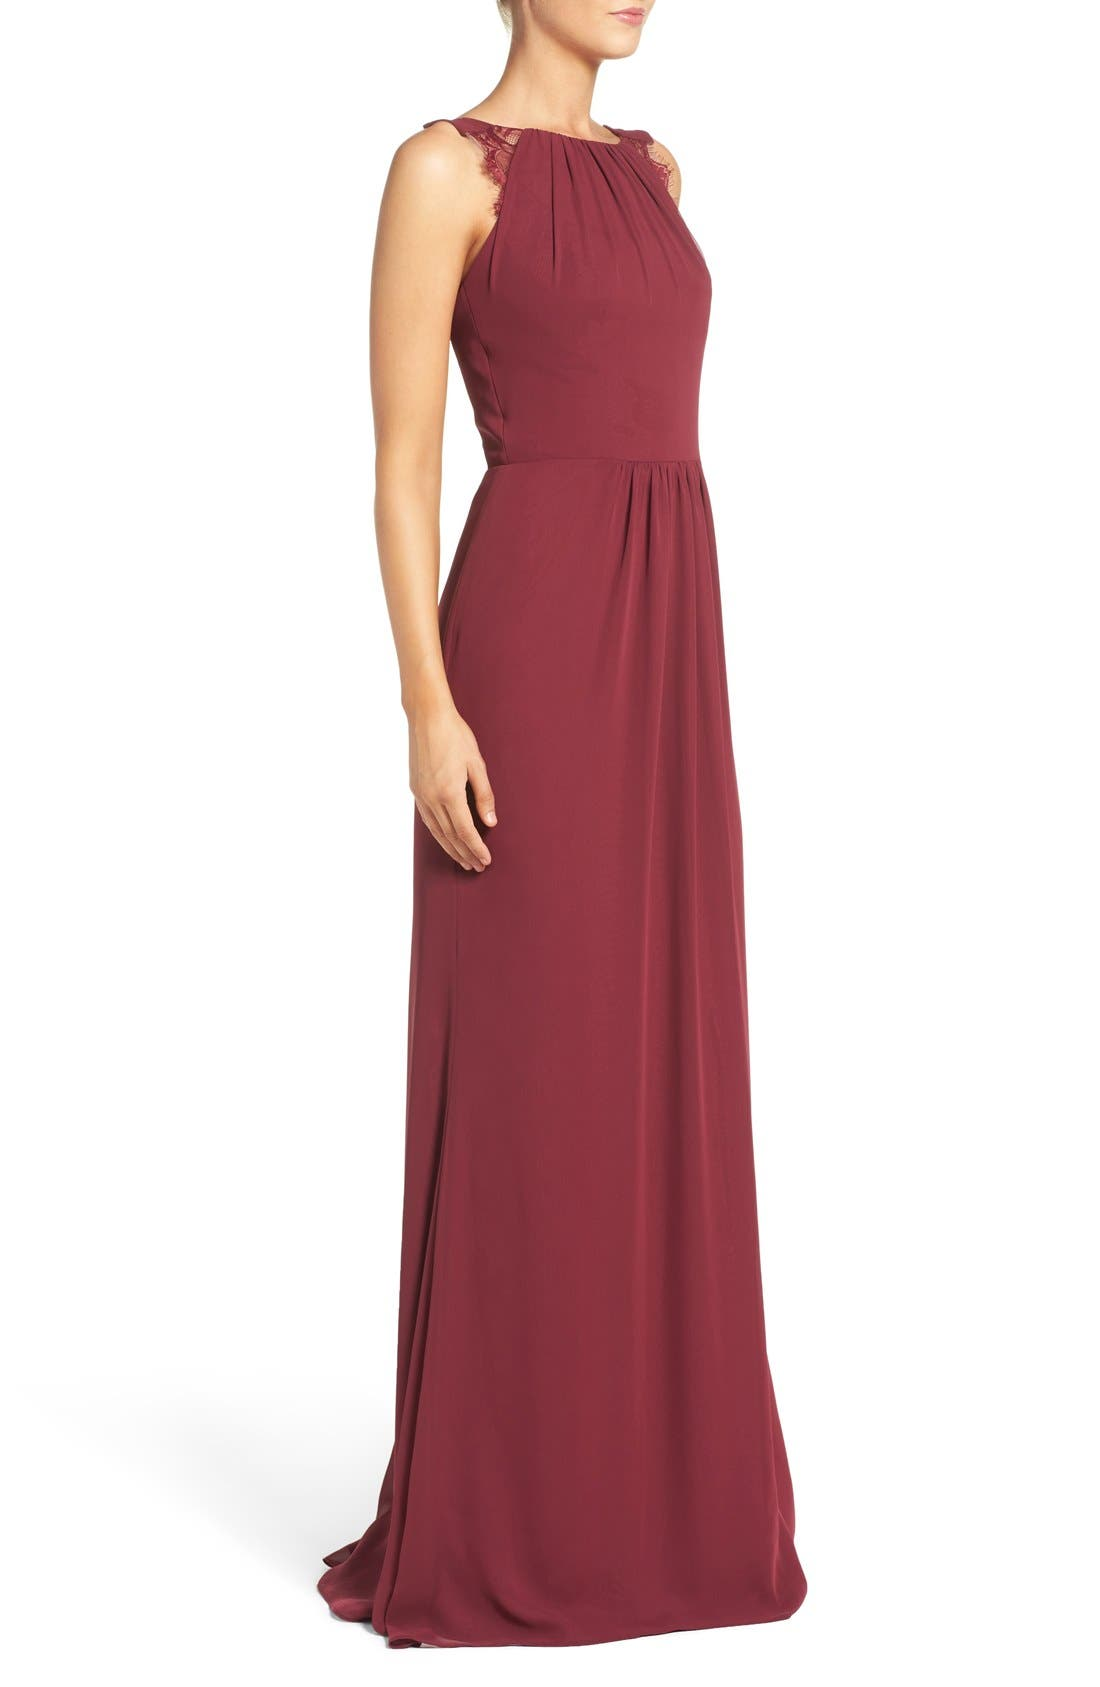 Lace Strap Gathered Chiffon Gown,                             Alternate thumbnail 3, color,                             Burgundy/ Burgundy